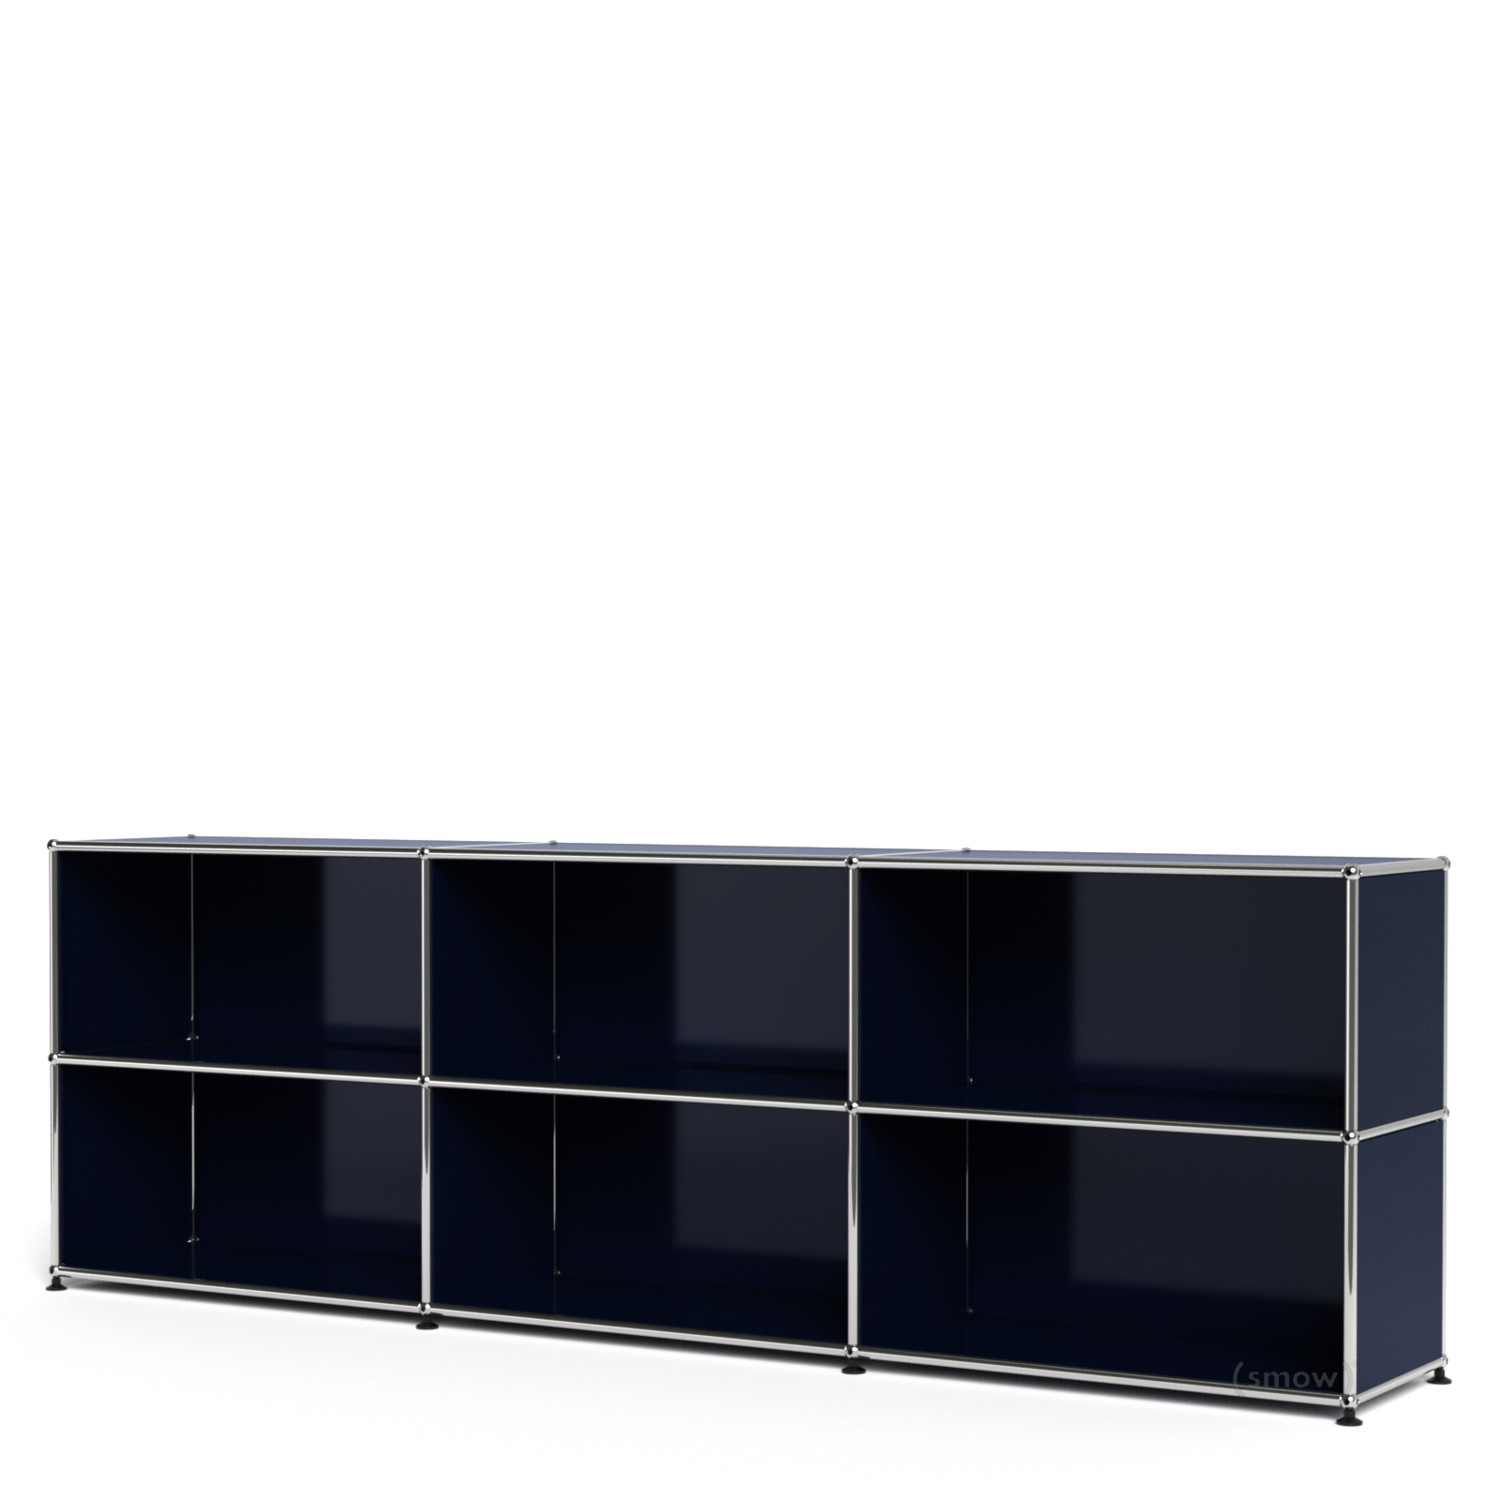 Usm haller sideboard xl customisable steel blue ral 5011 for Sideboard usm